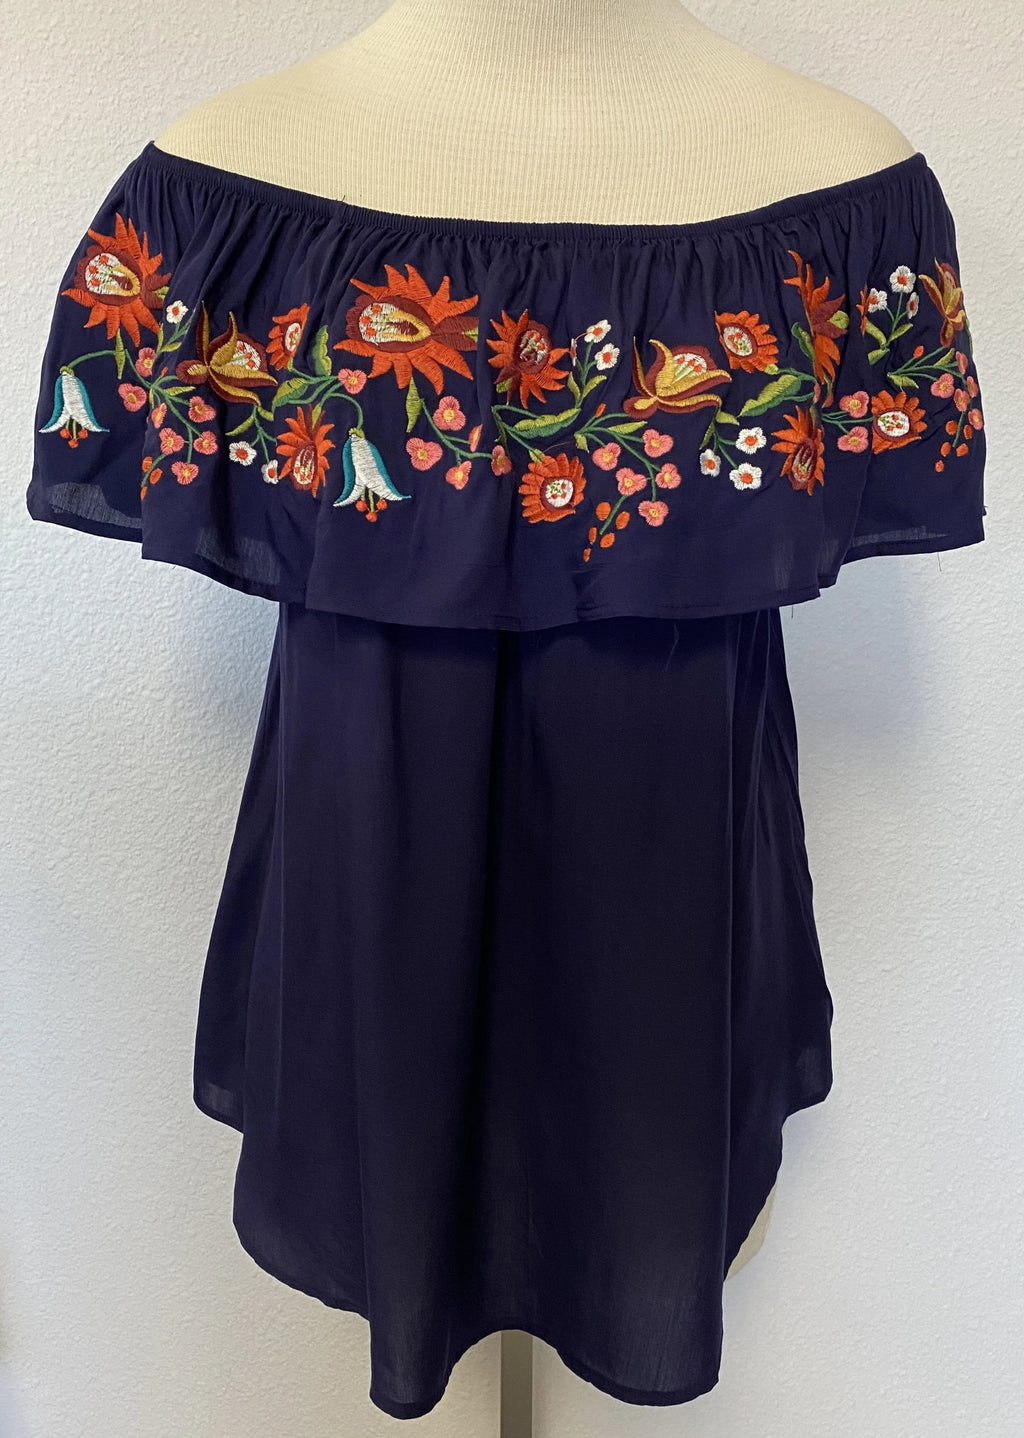 FLORAL EMBROIDERY RUFFLED BLOUSE